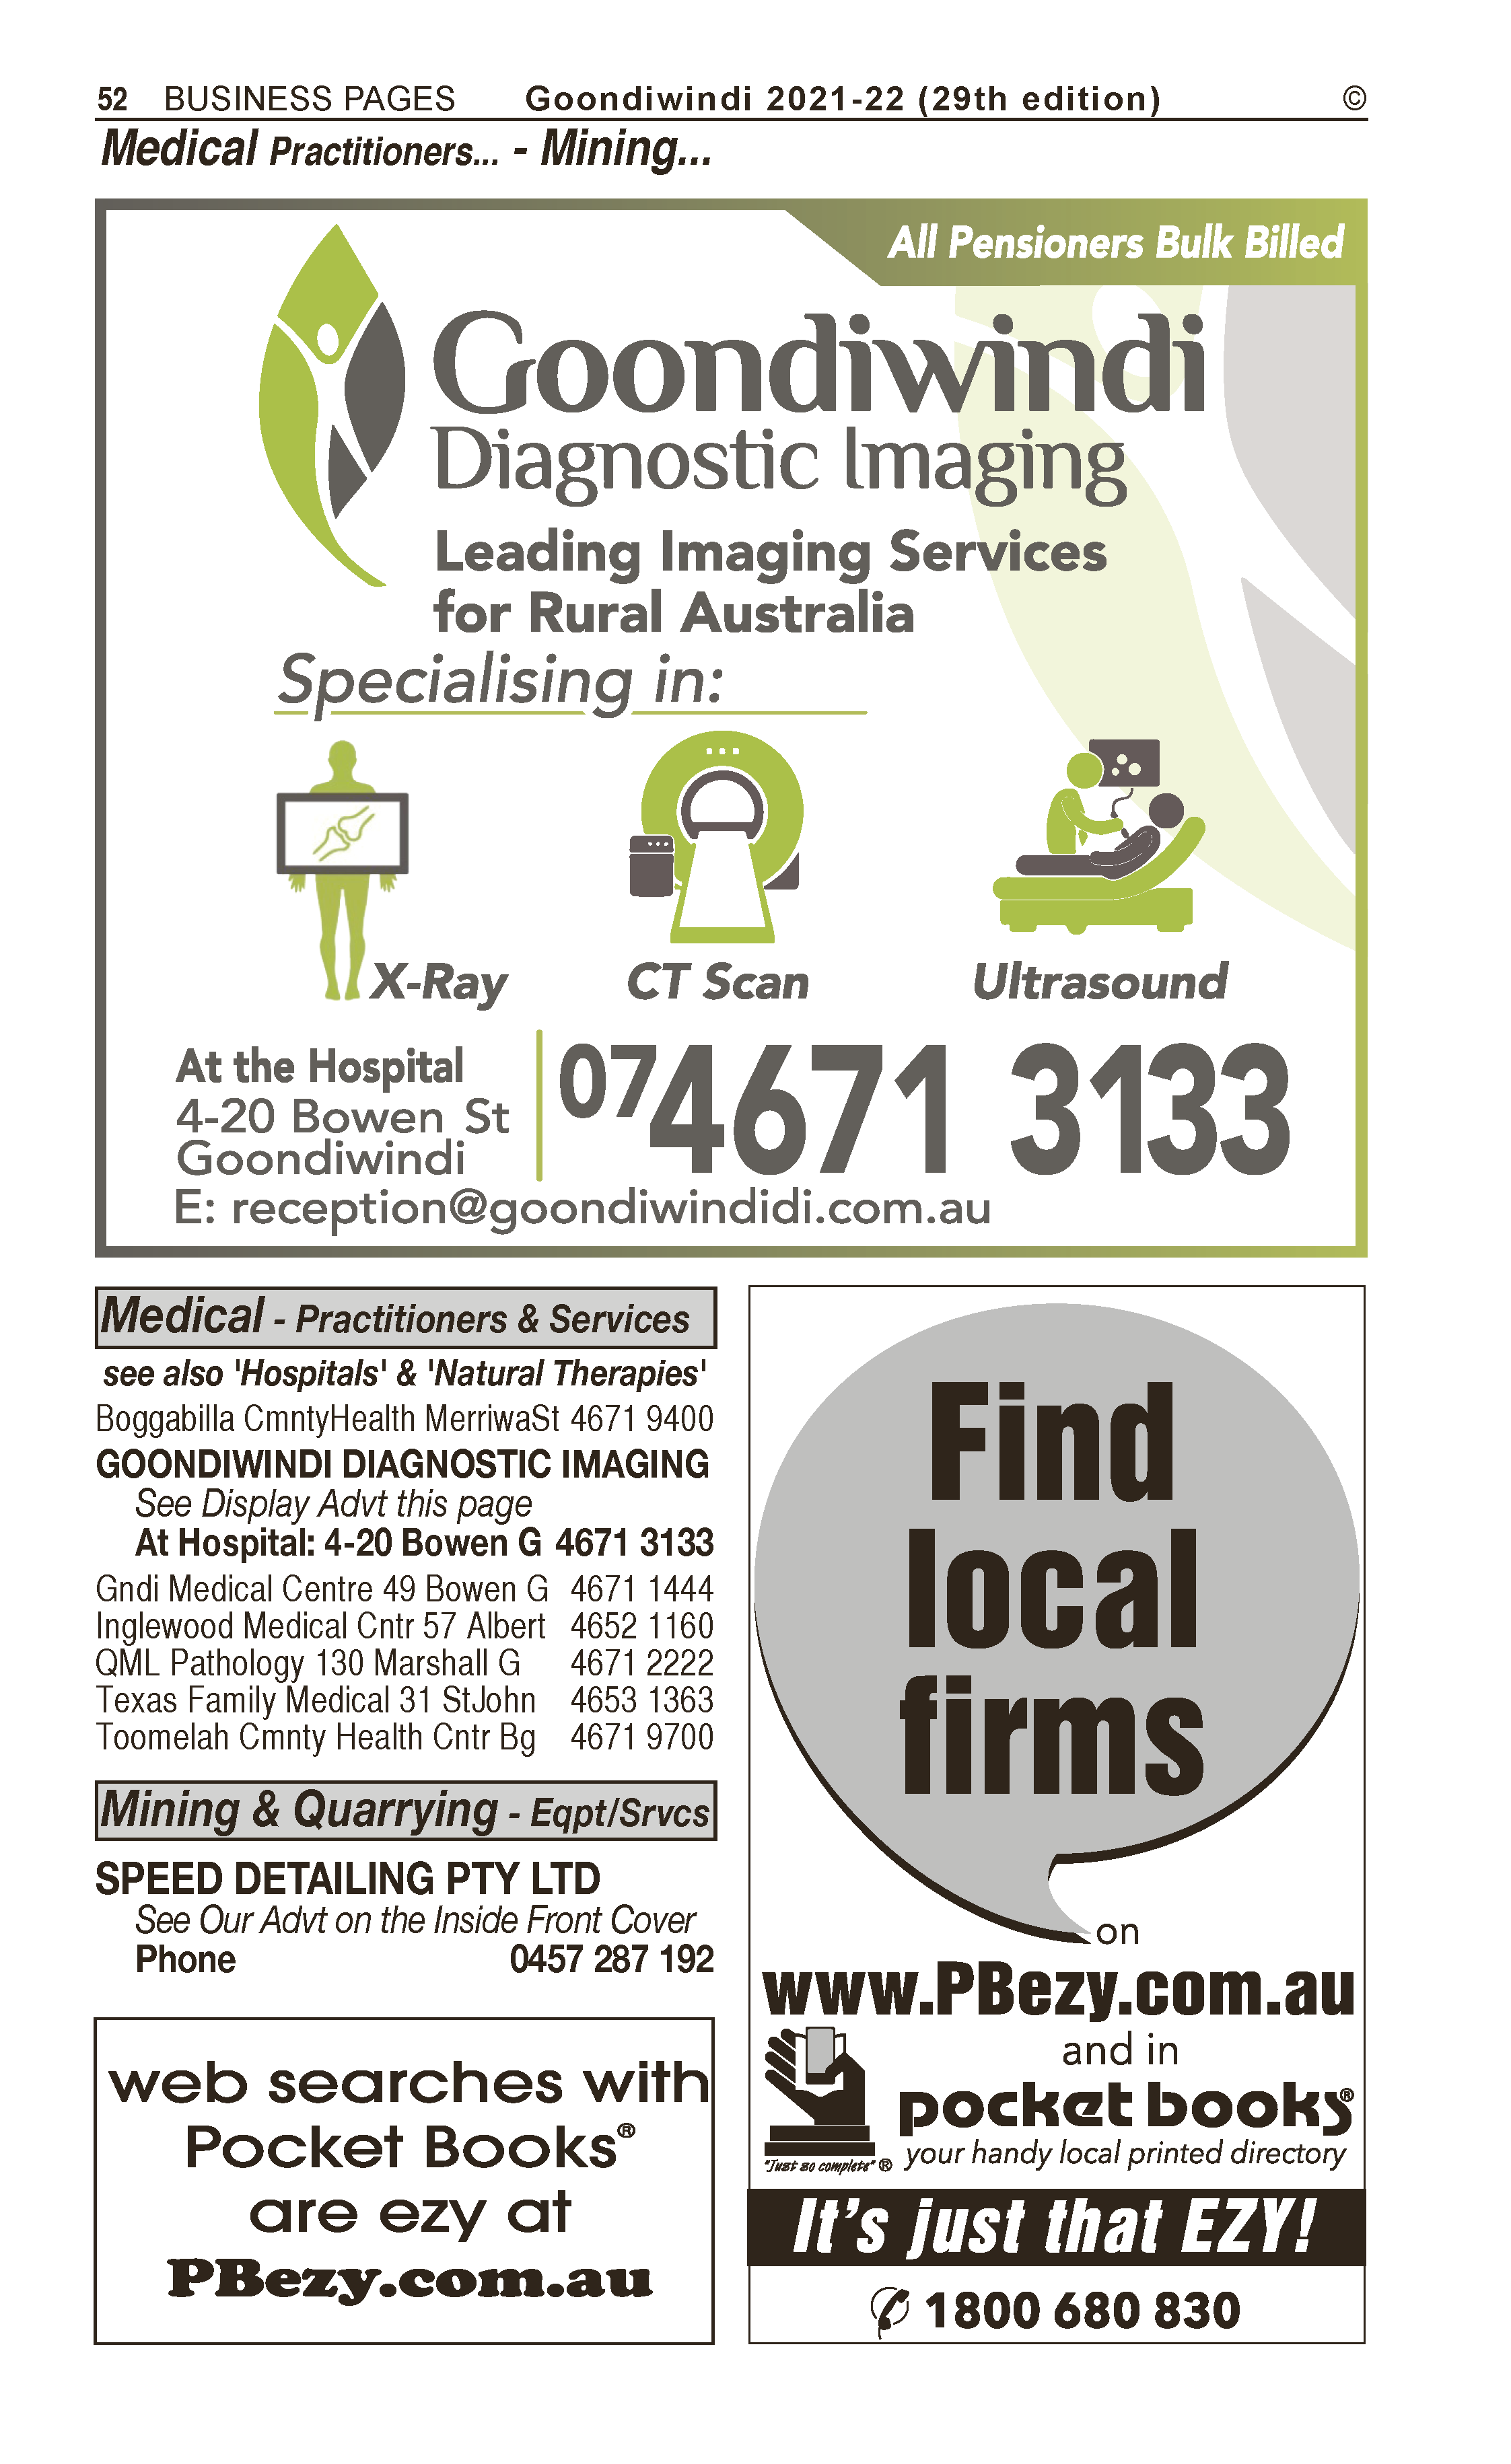 Caldi's Fertilizer Spreading Services in Goondiwindi QLD - page 52